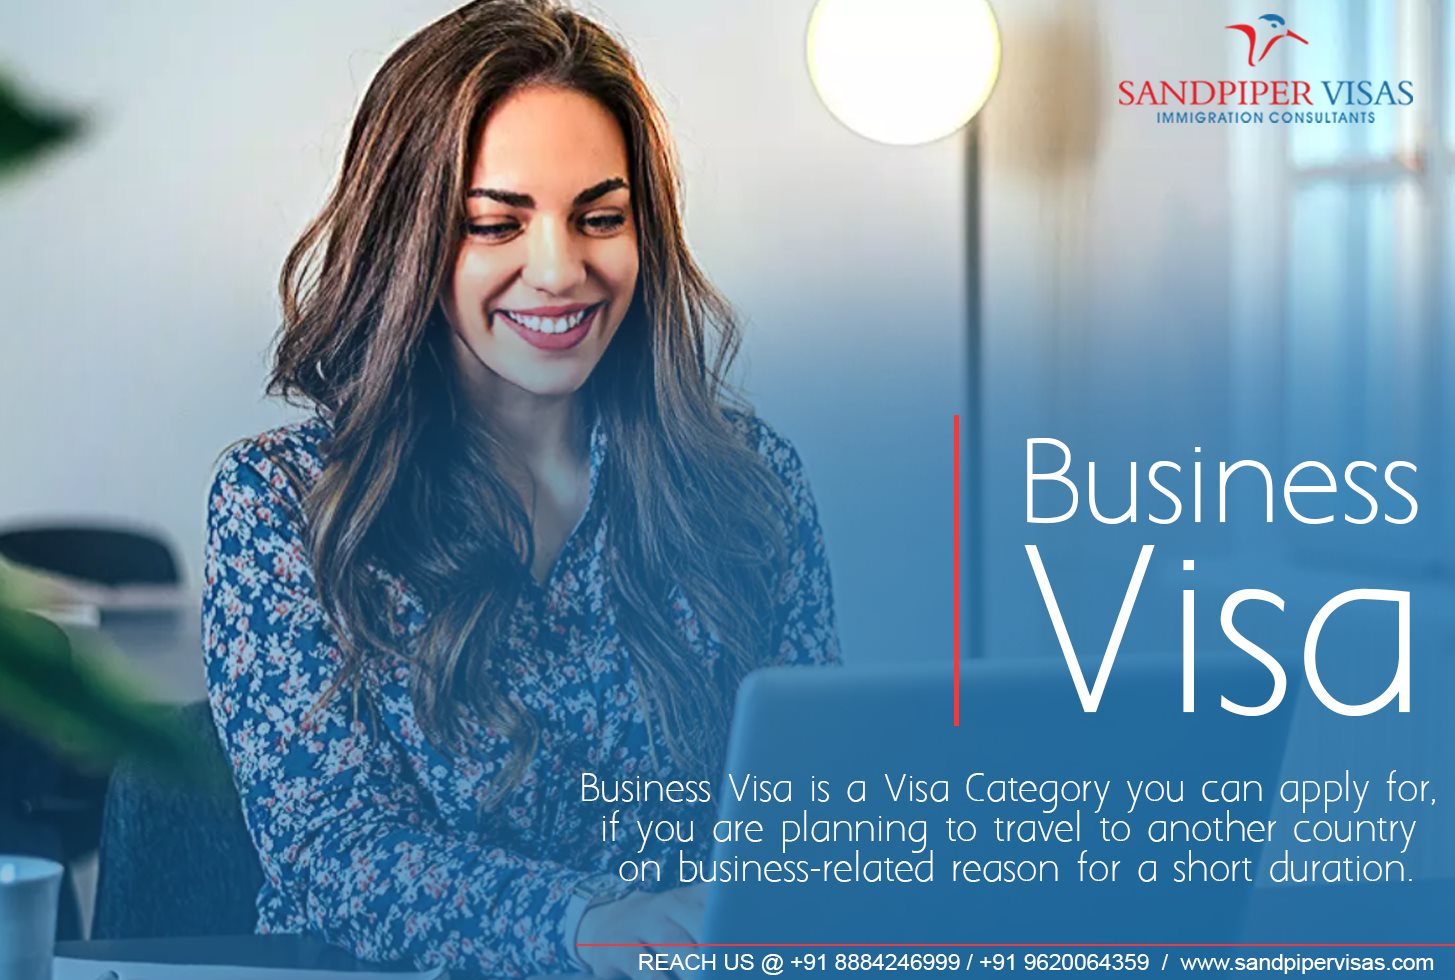 Sandpiper Visas Immigration Consultants: Onestop Solution for All Your Immi...